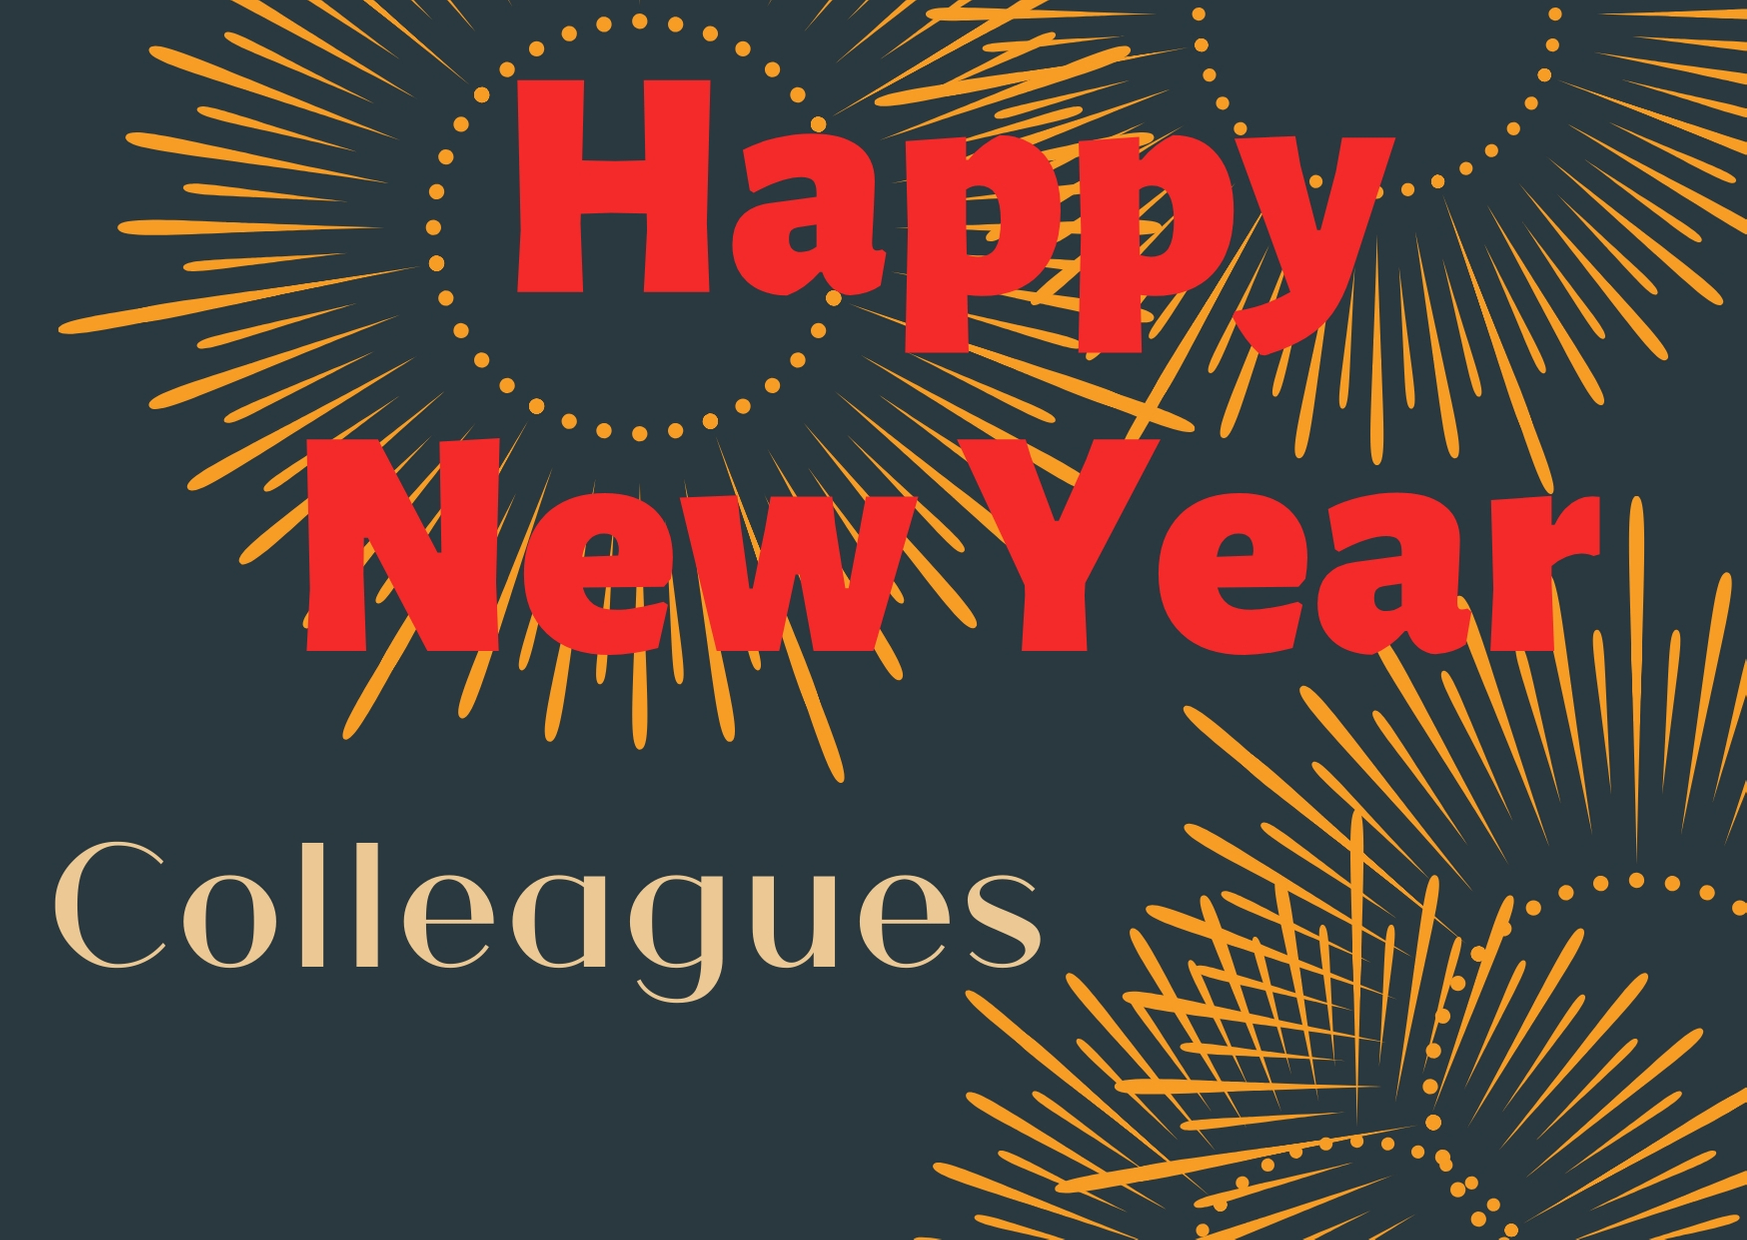 happy new year wishes for colleagues 2021, happy new year greetings for colleagues, happy new year wishes quotes for colleagues, best happy new year wishes for colleagues